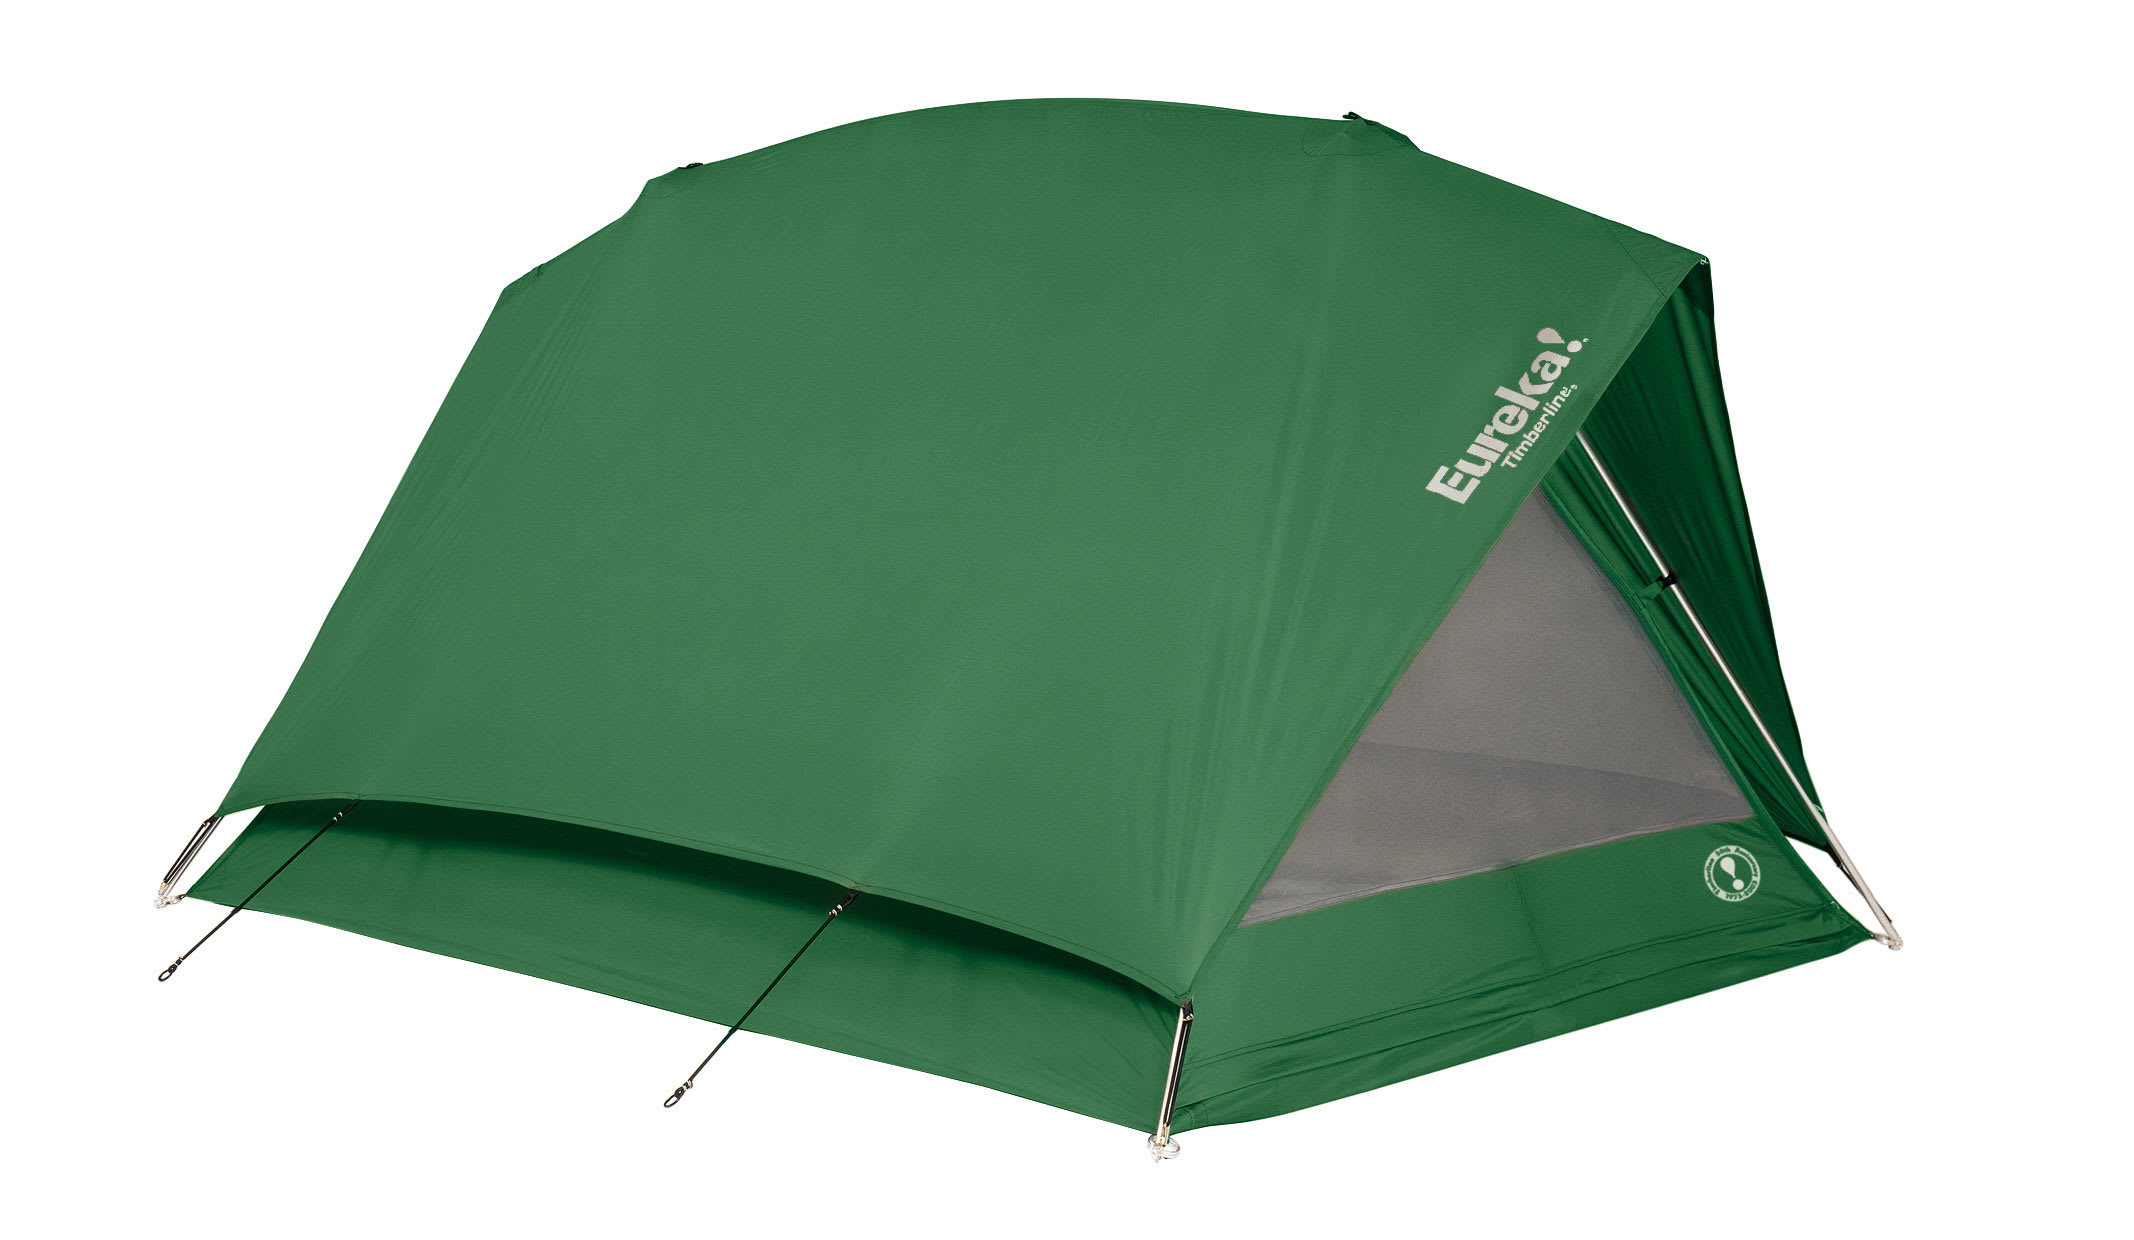 Shop for Eureka Timberline 4 Person Tent Green